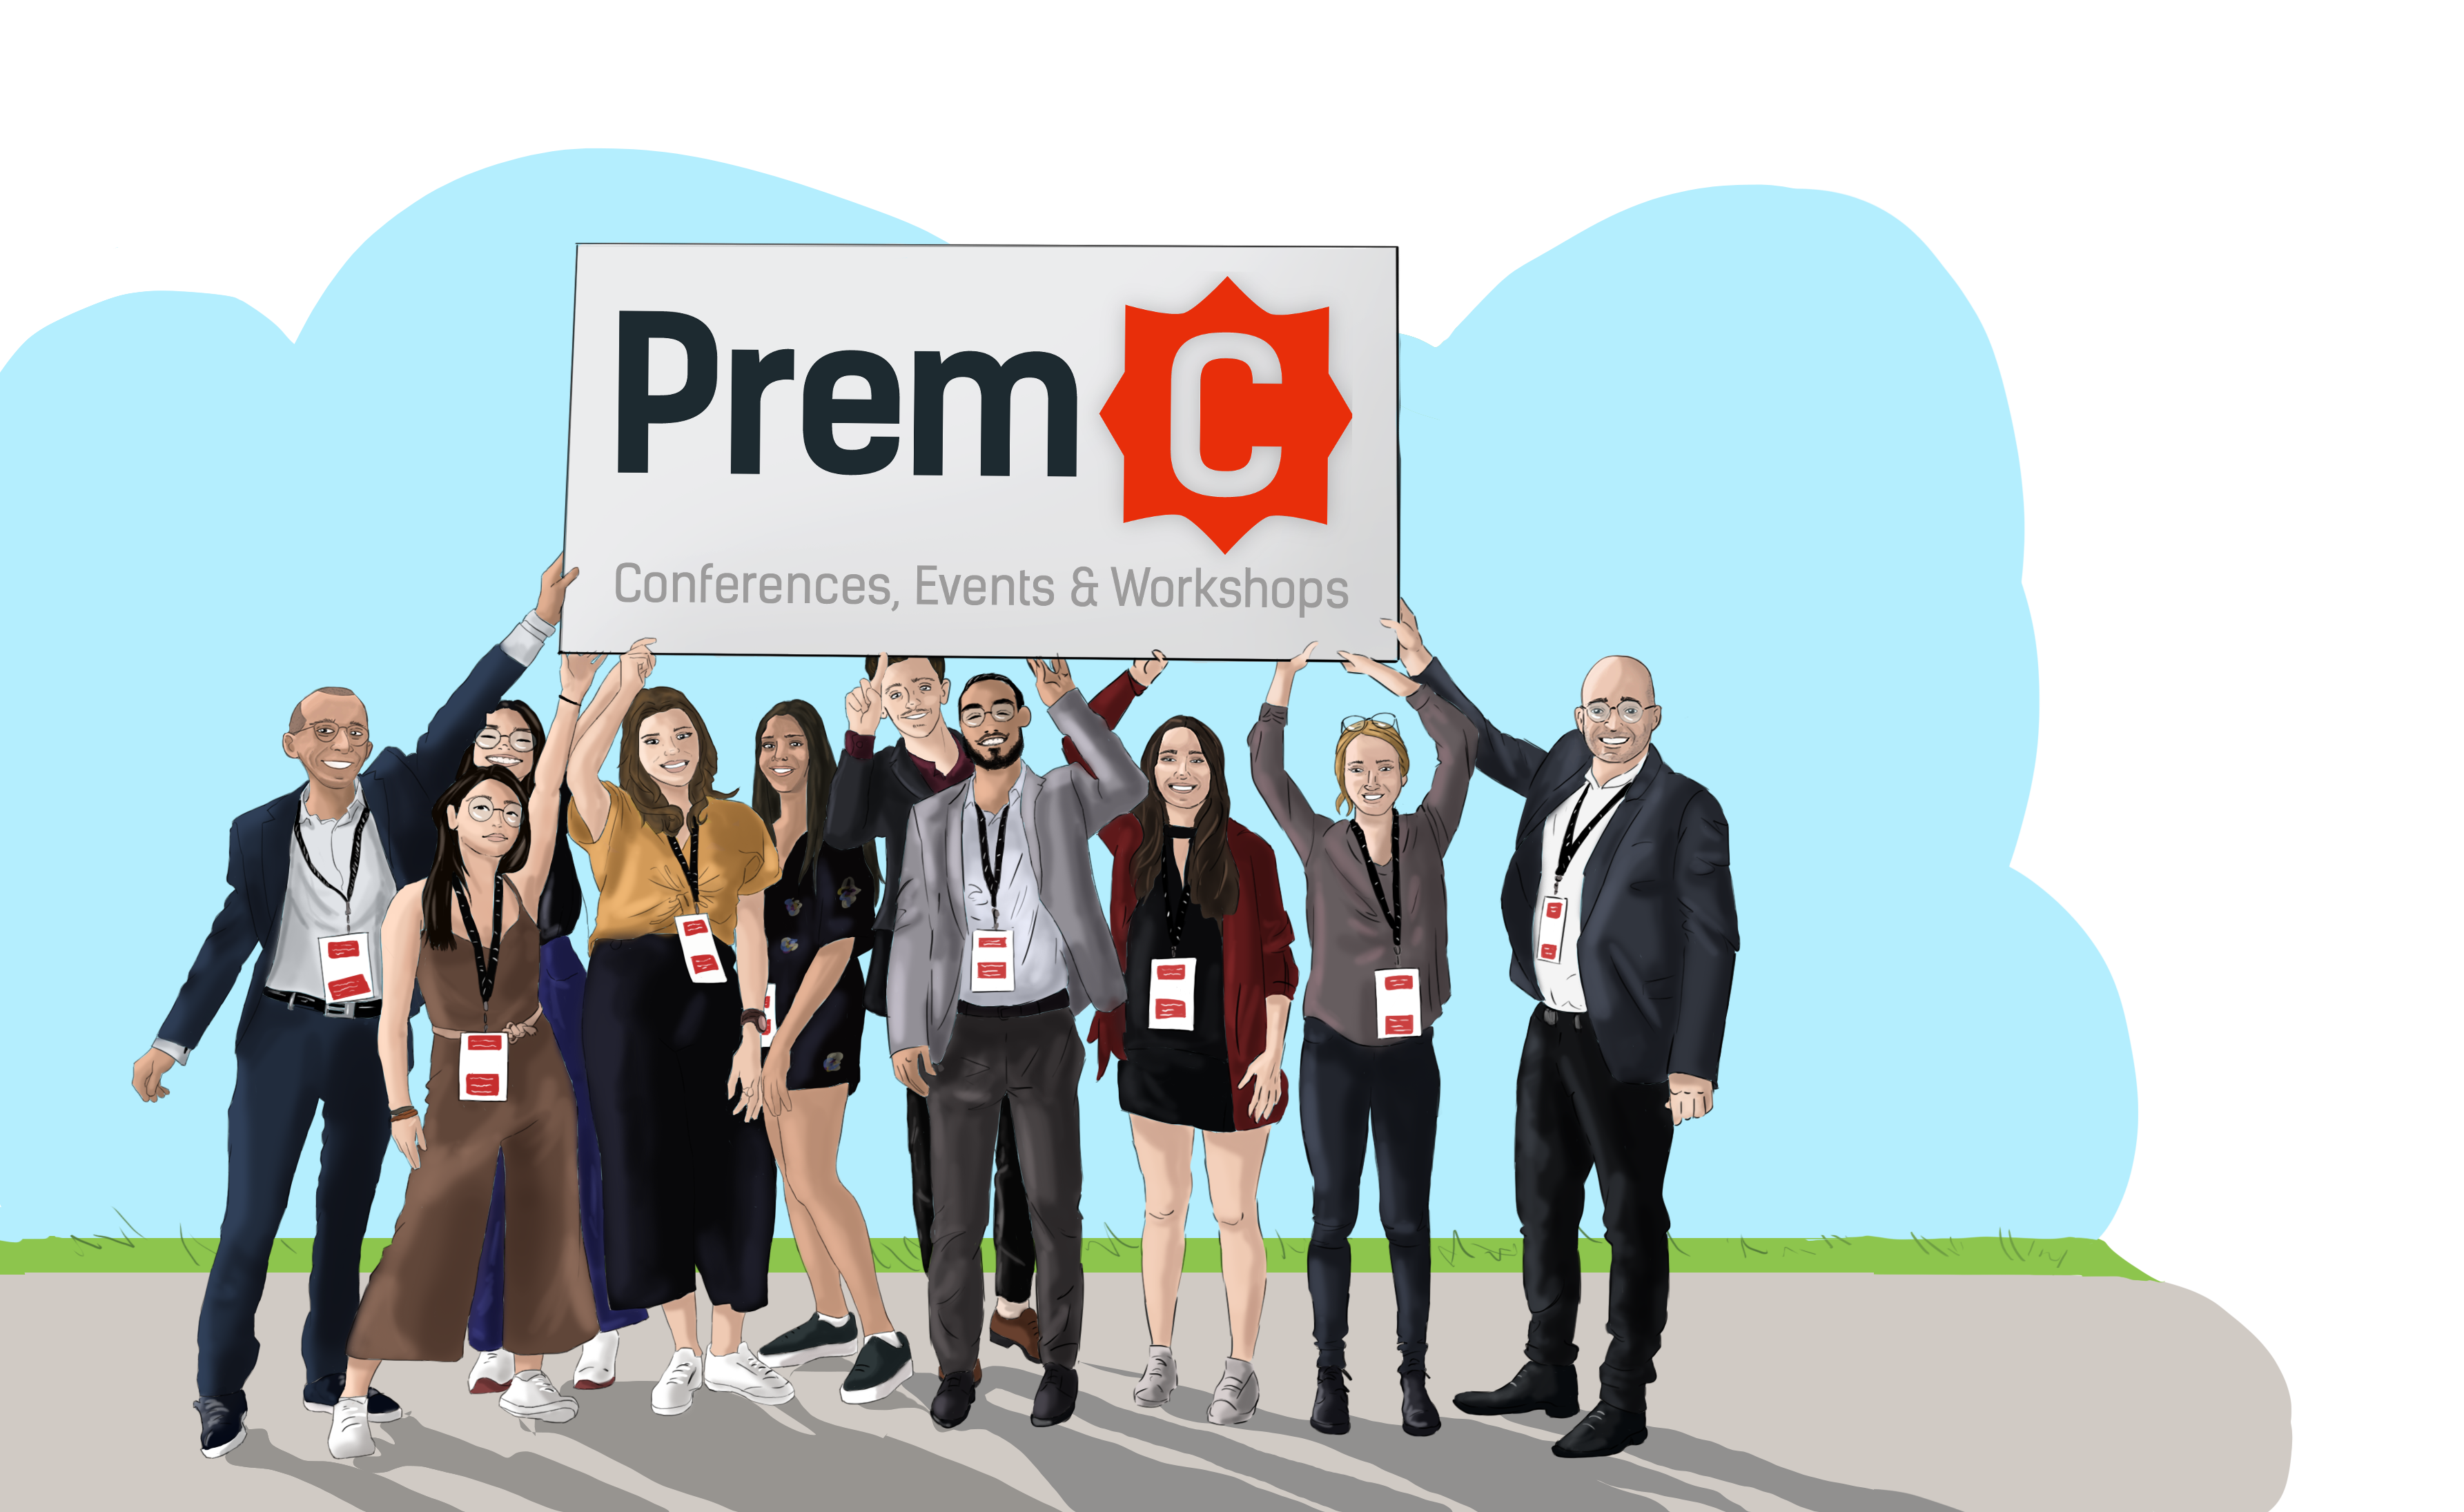 Team of the Professional Conference Organizer : PREMC